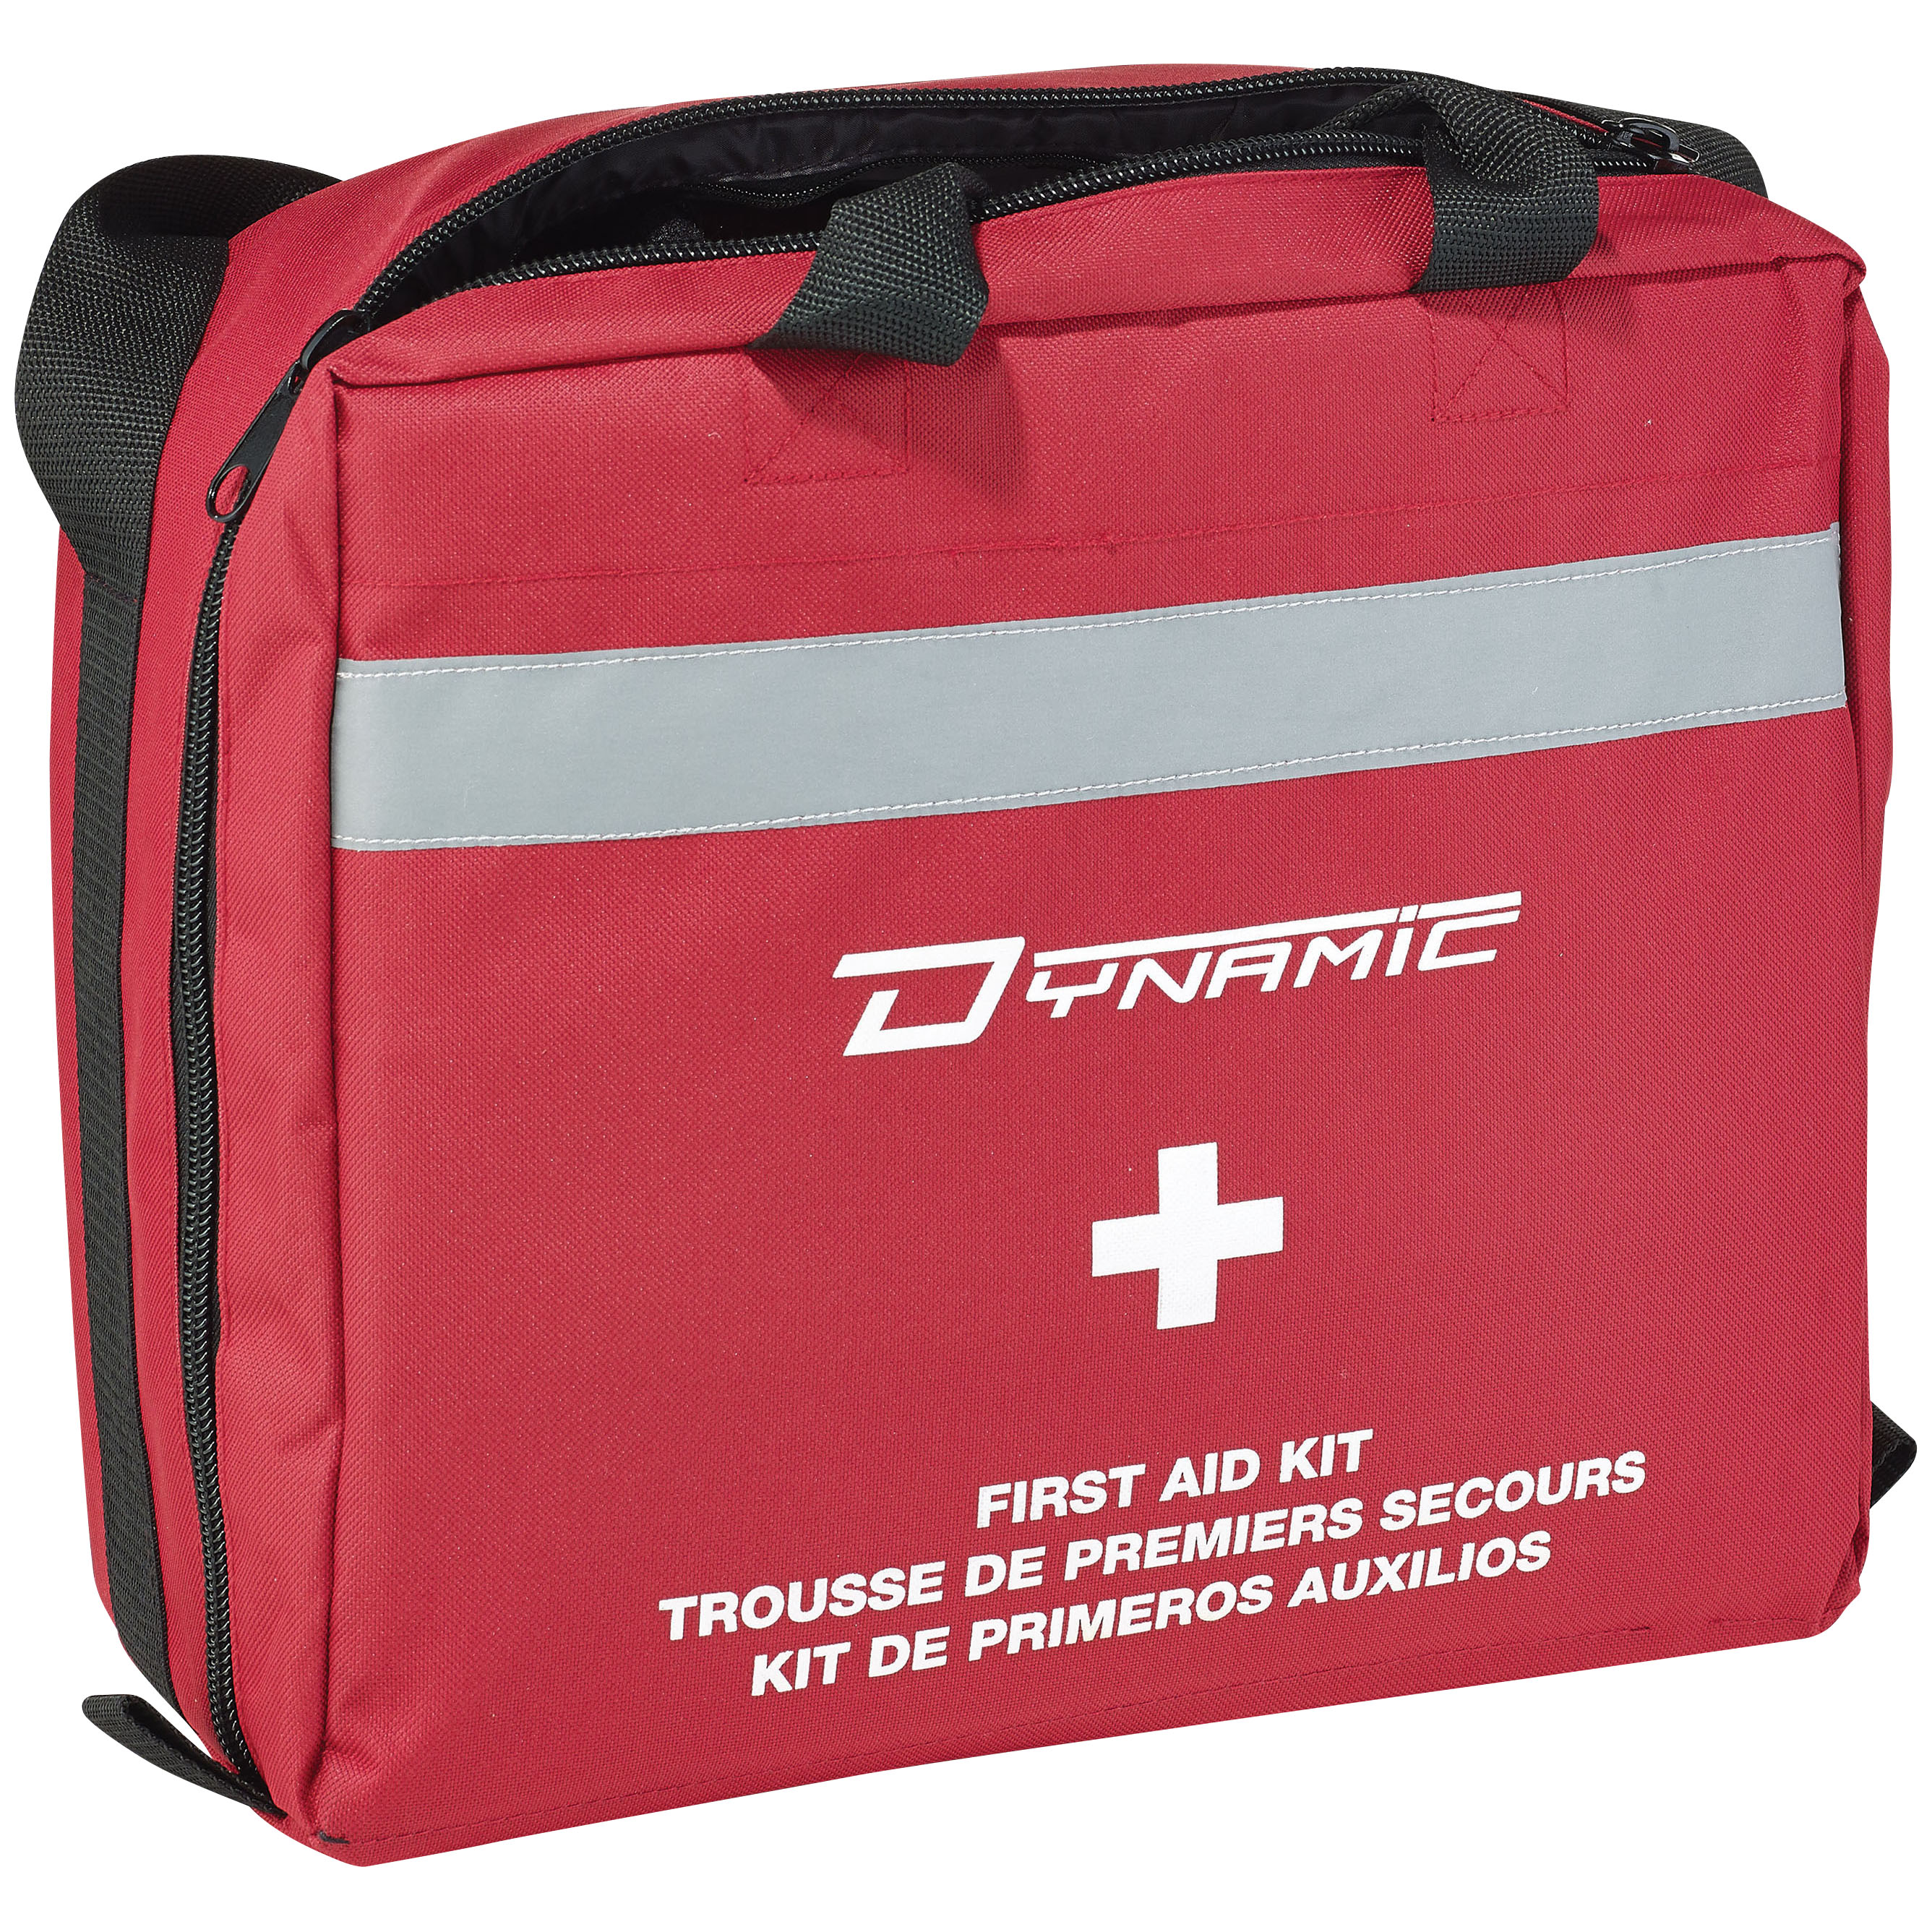 CSA standard First aid kit Type 3 Large in nylon bag